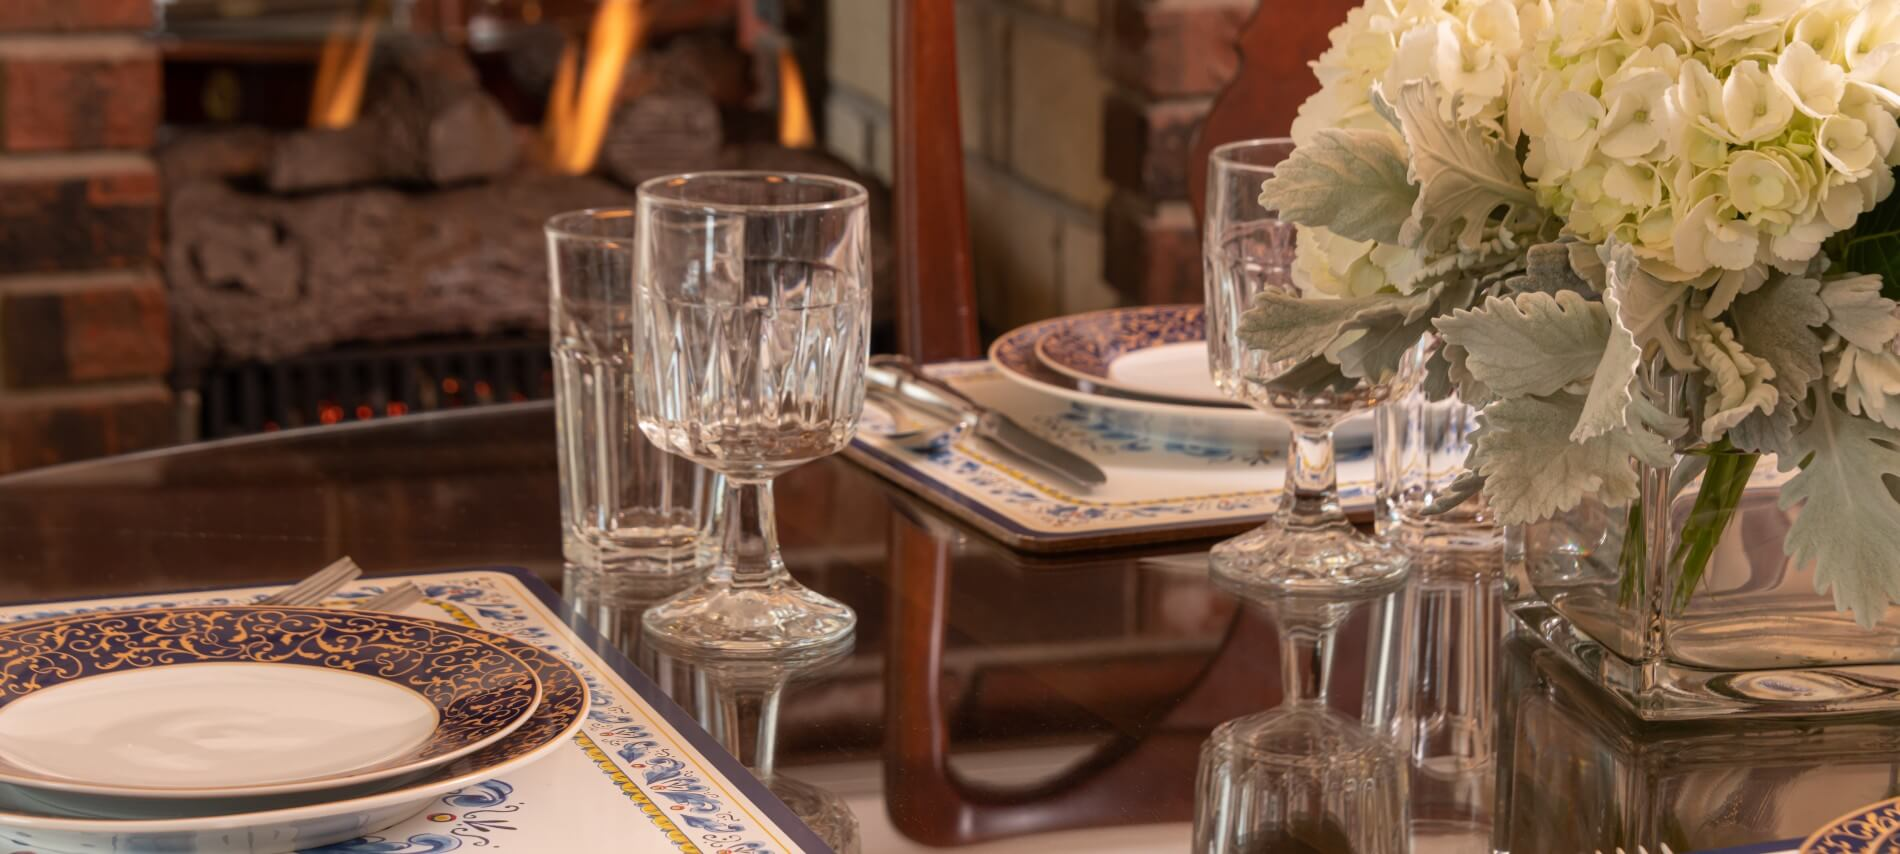 table set with place settings, fireplace in background